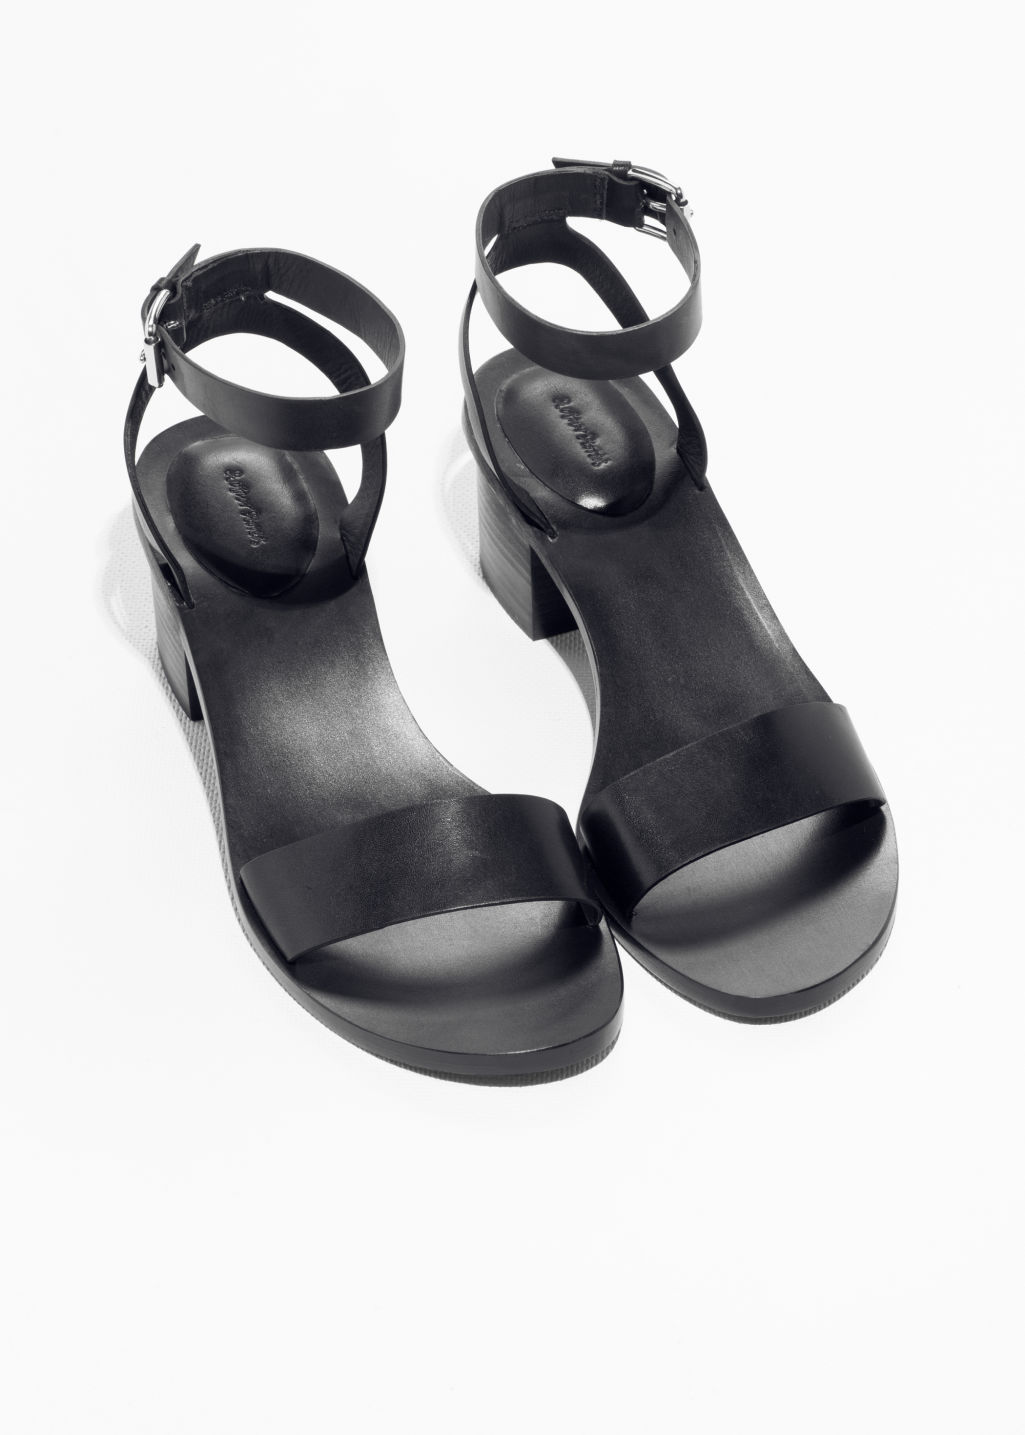 & OTHER STORIES Cross Ankle Strap Heeled Sandals odxBjRE